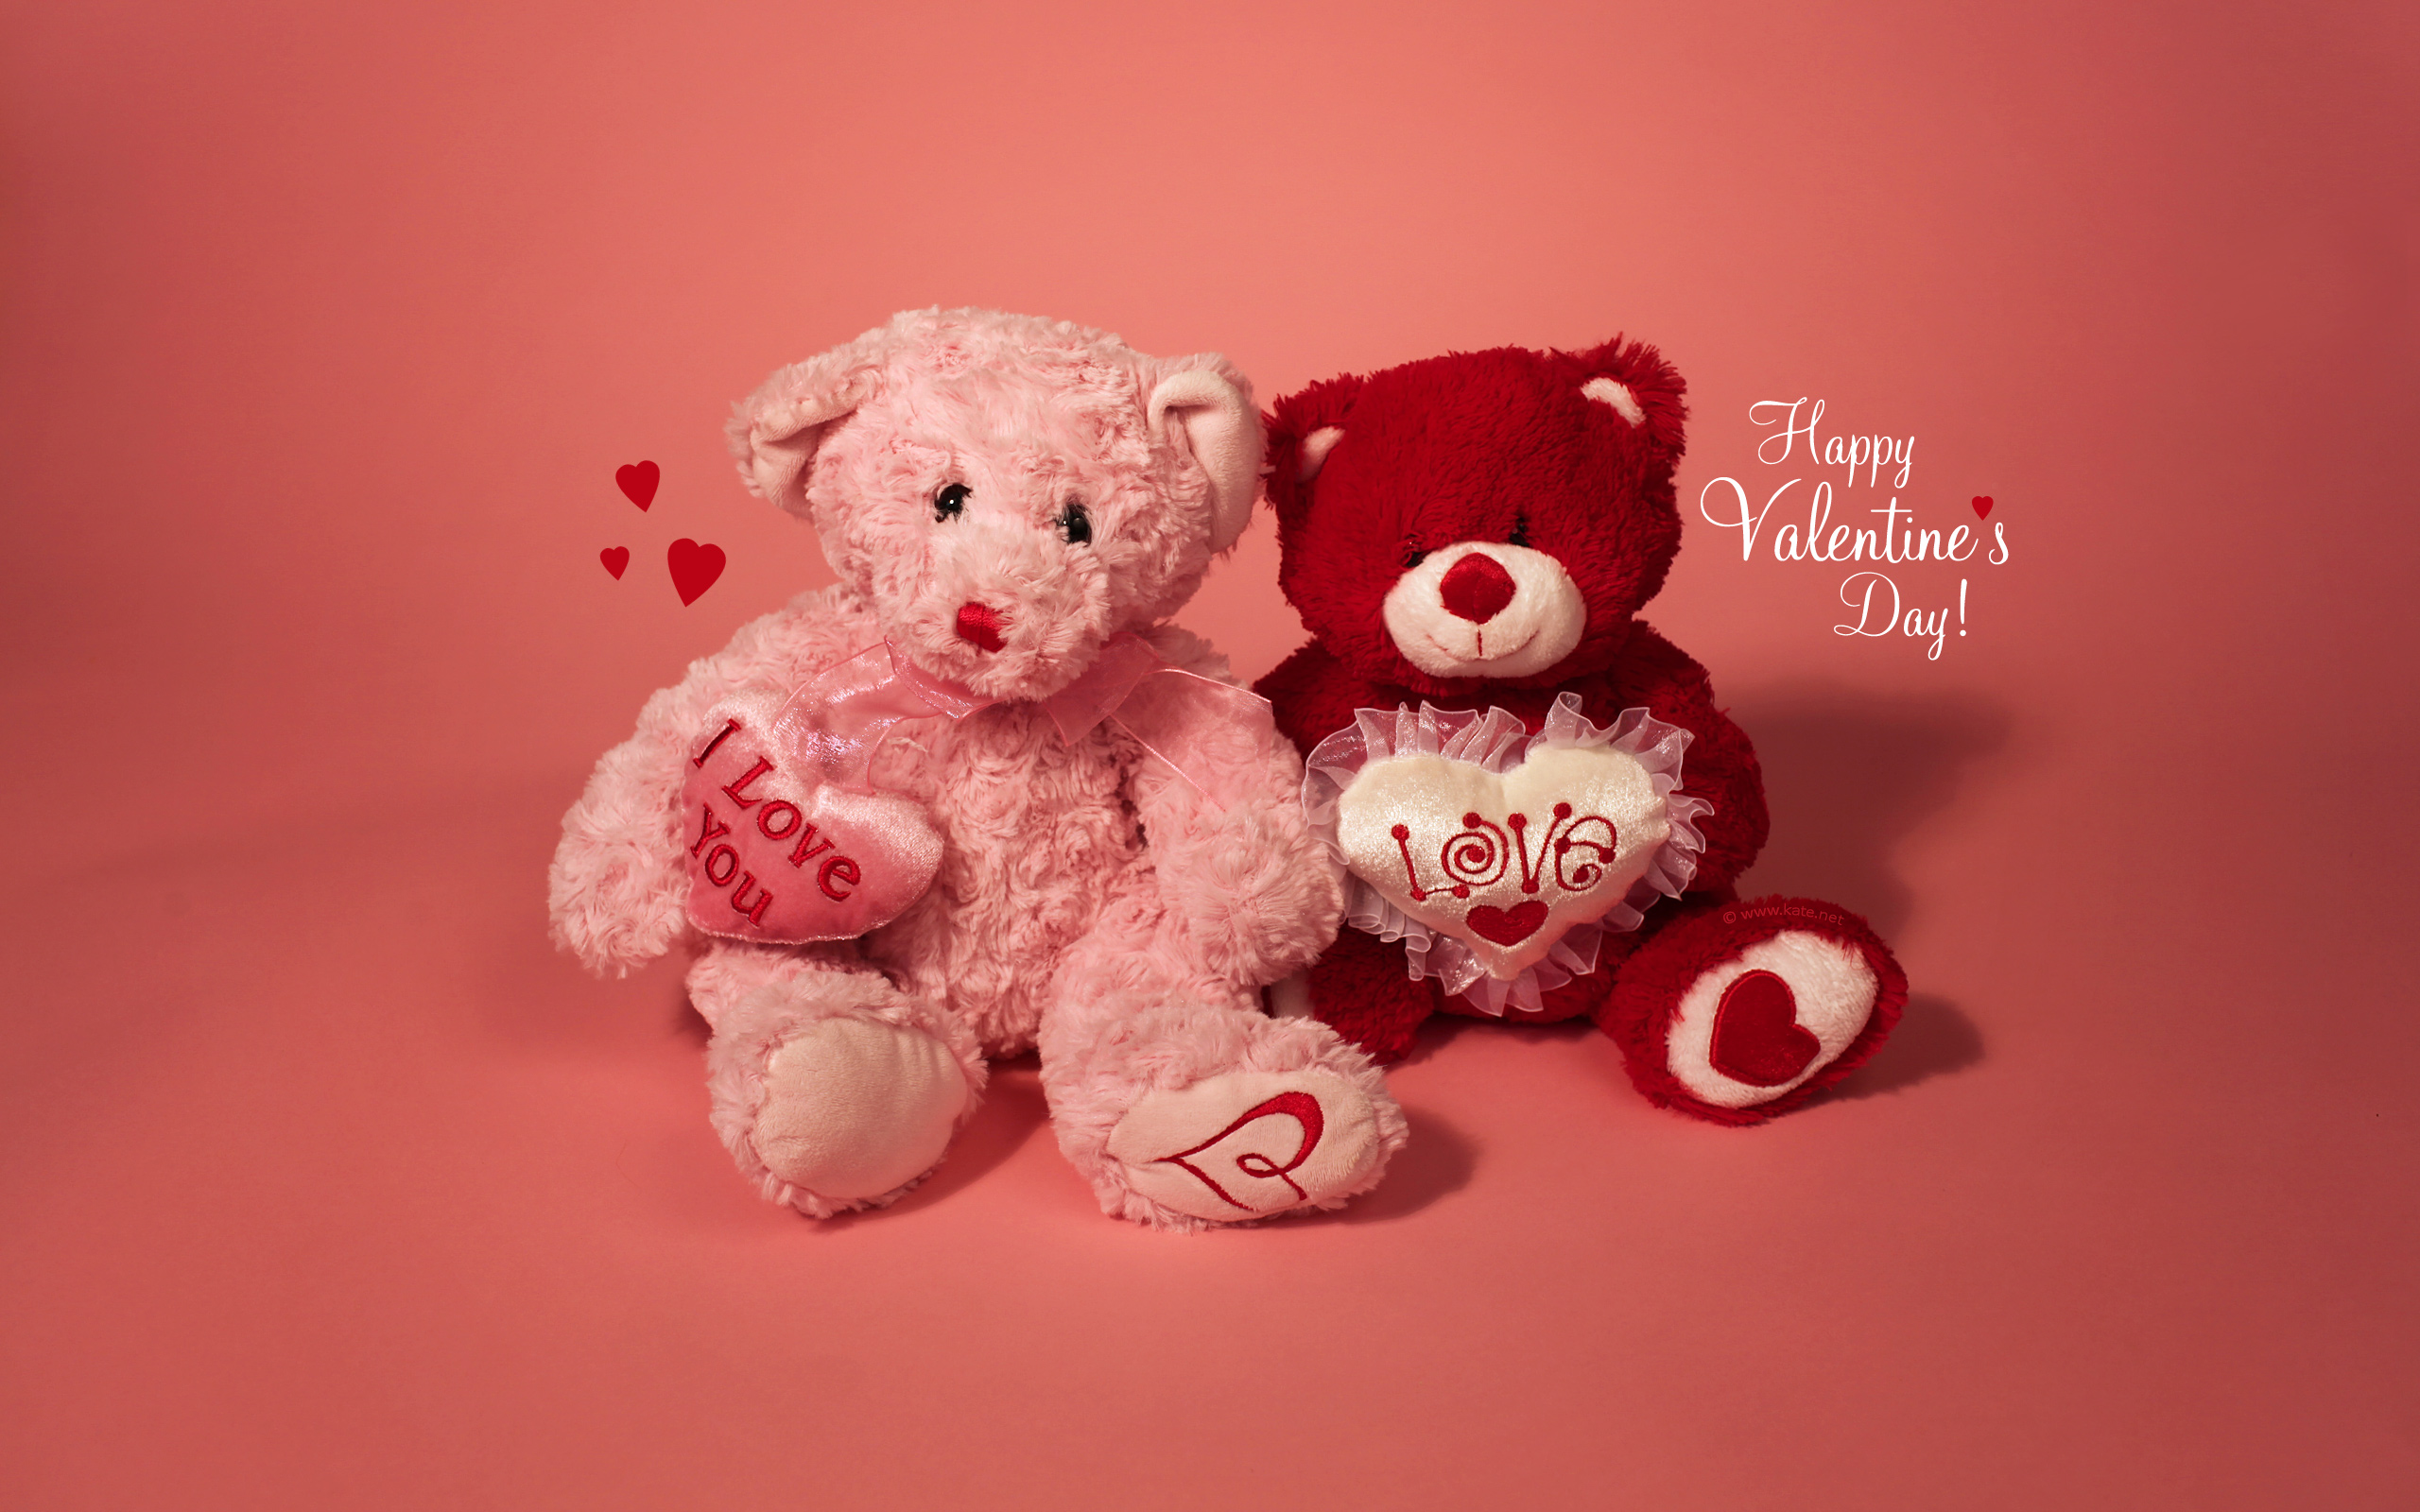 Holiday - Valentine's Day  Teddy Bear Love Wallpaper